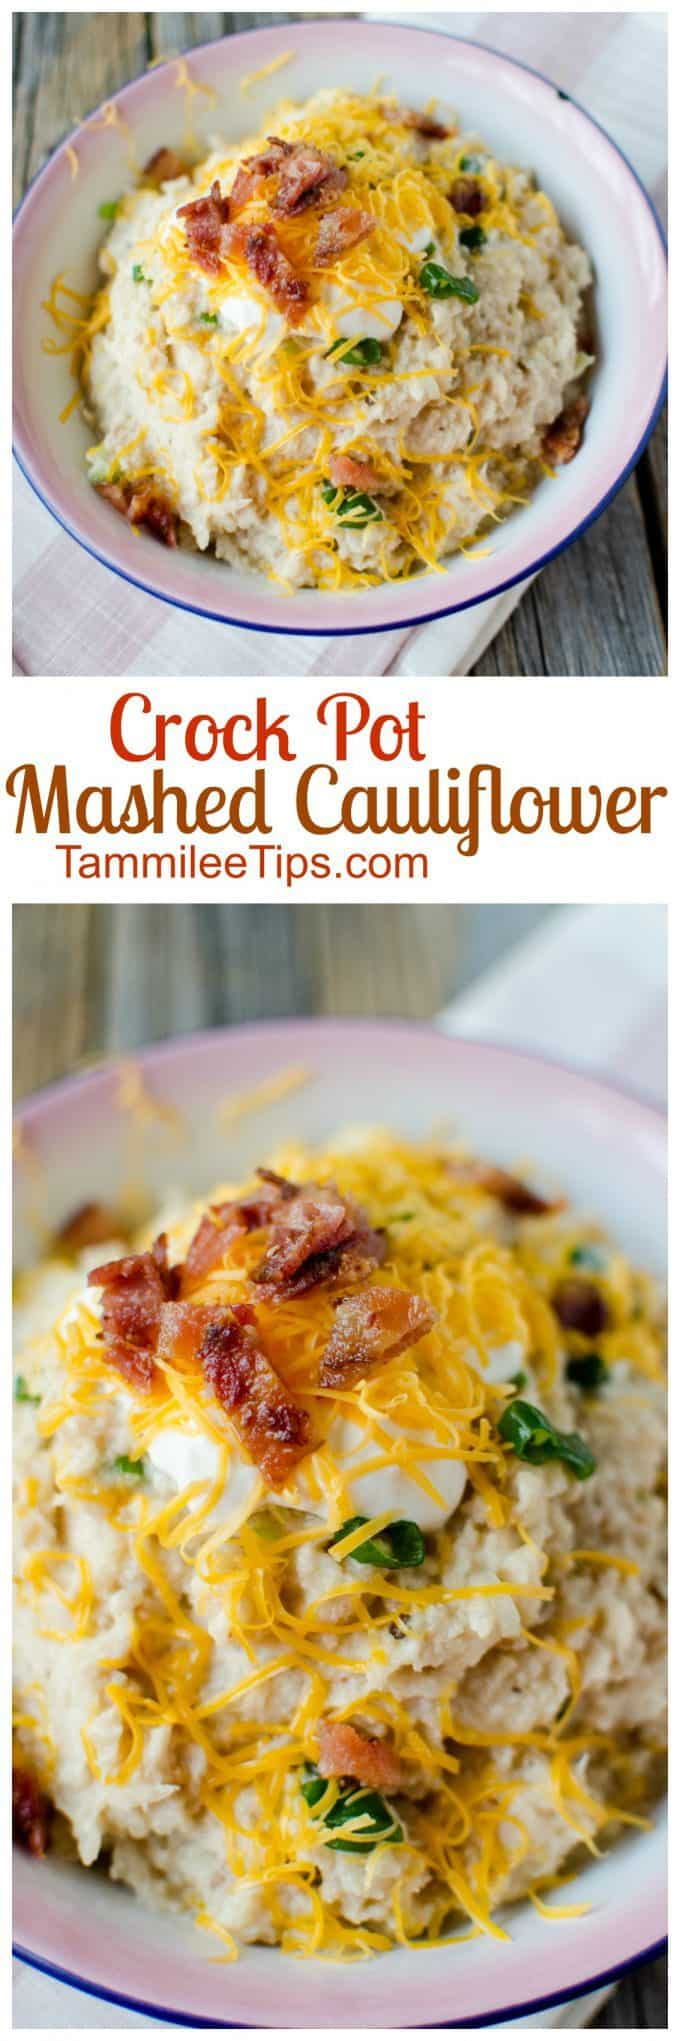 Easy recipe for Crock Pot Mashed Cauliflower loaded with garlic and cheese. You can leave the cheese off to make a healthy version if you like. This slow cooker comfort food is the perfect side dish for Thanksgiving, Christmas or a family dinner. #thanksgiving #recipe #healthy #crockpot #slowcooker